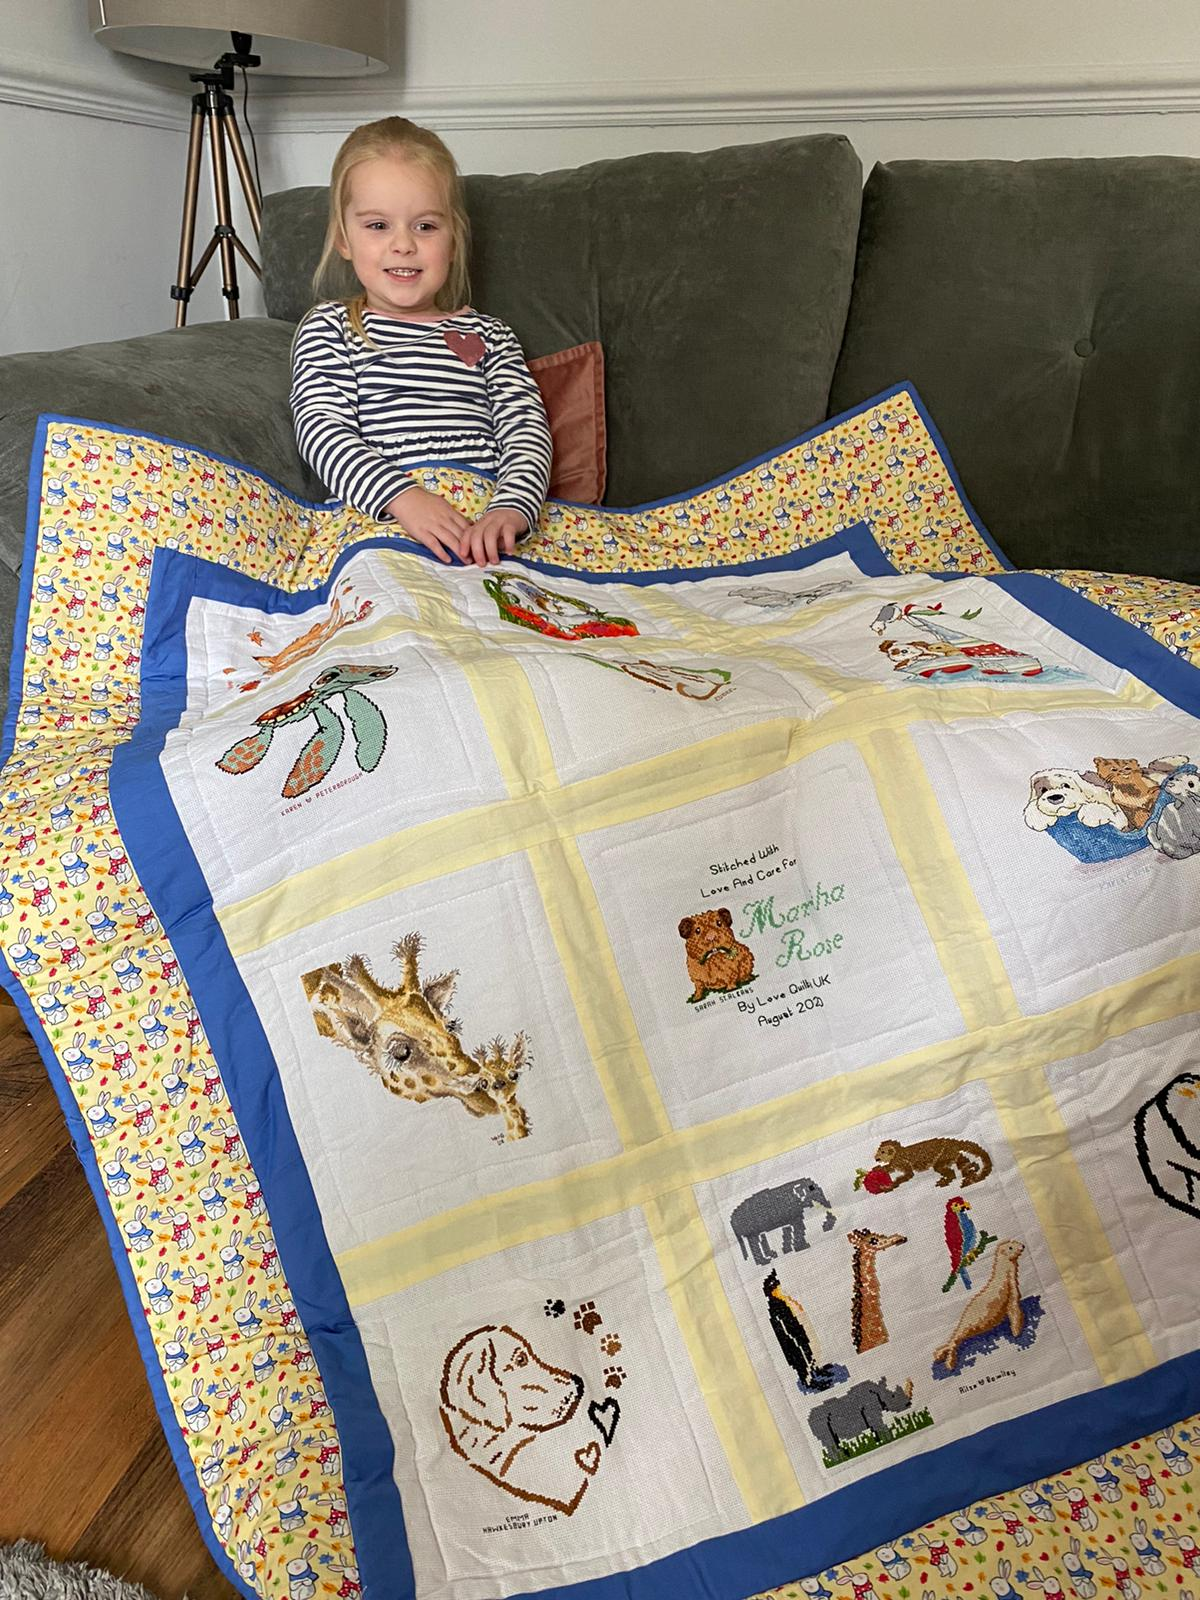 Photo of Martha-Rose's quilt